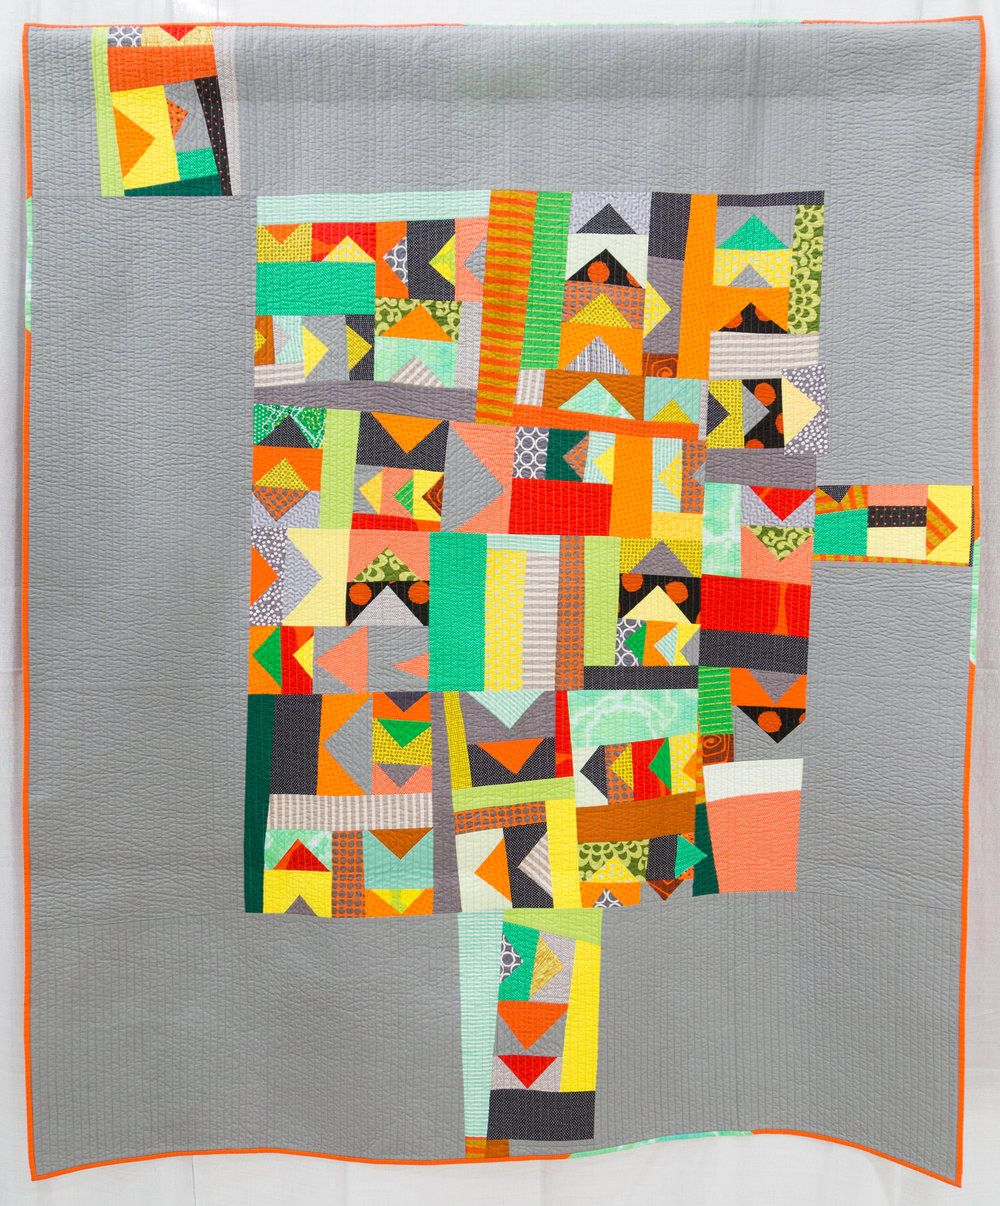 "3rd Place: This Way  57"" x 67"" Pieced & Quilted by: Tricia Royal Chicago, Illinois Chicago MQG"